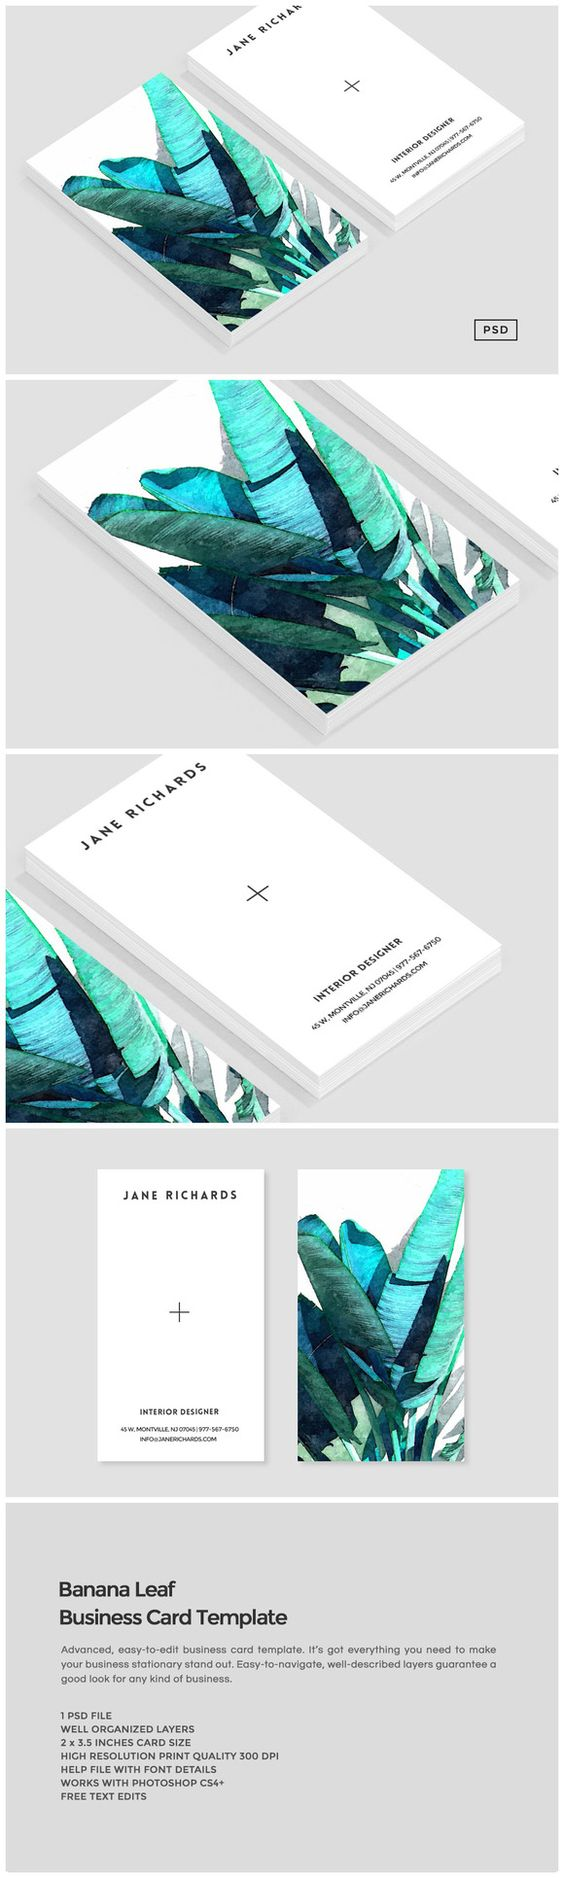 Banana Leaf Business Card Template  Introducing our latest Banana Leaf business card template, perfect for use in your next project or for your own brand identity. All our logo design ... https://creativemarket.com/MeeraG/509814-Banana-Leaf-Business-Card-Template